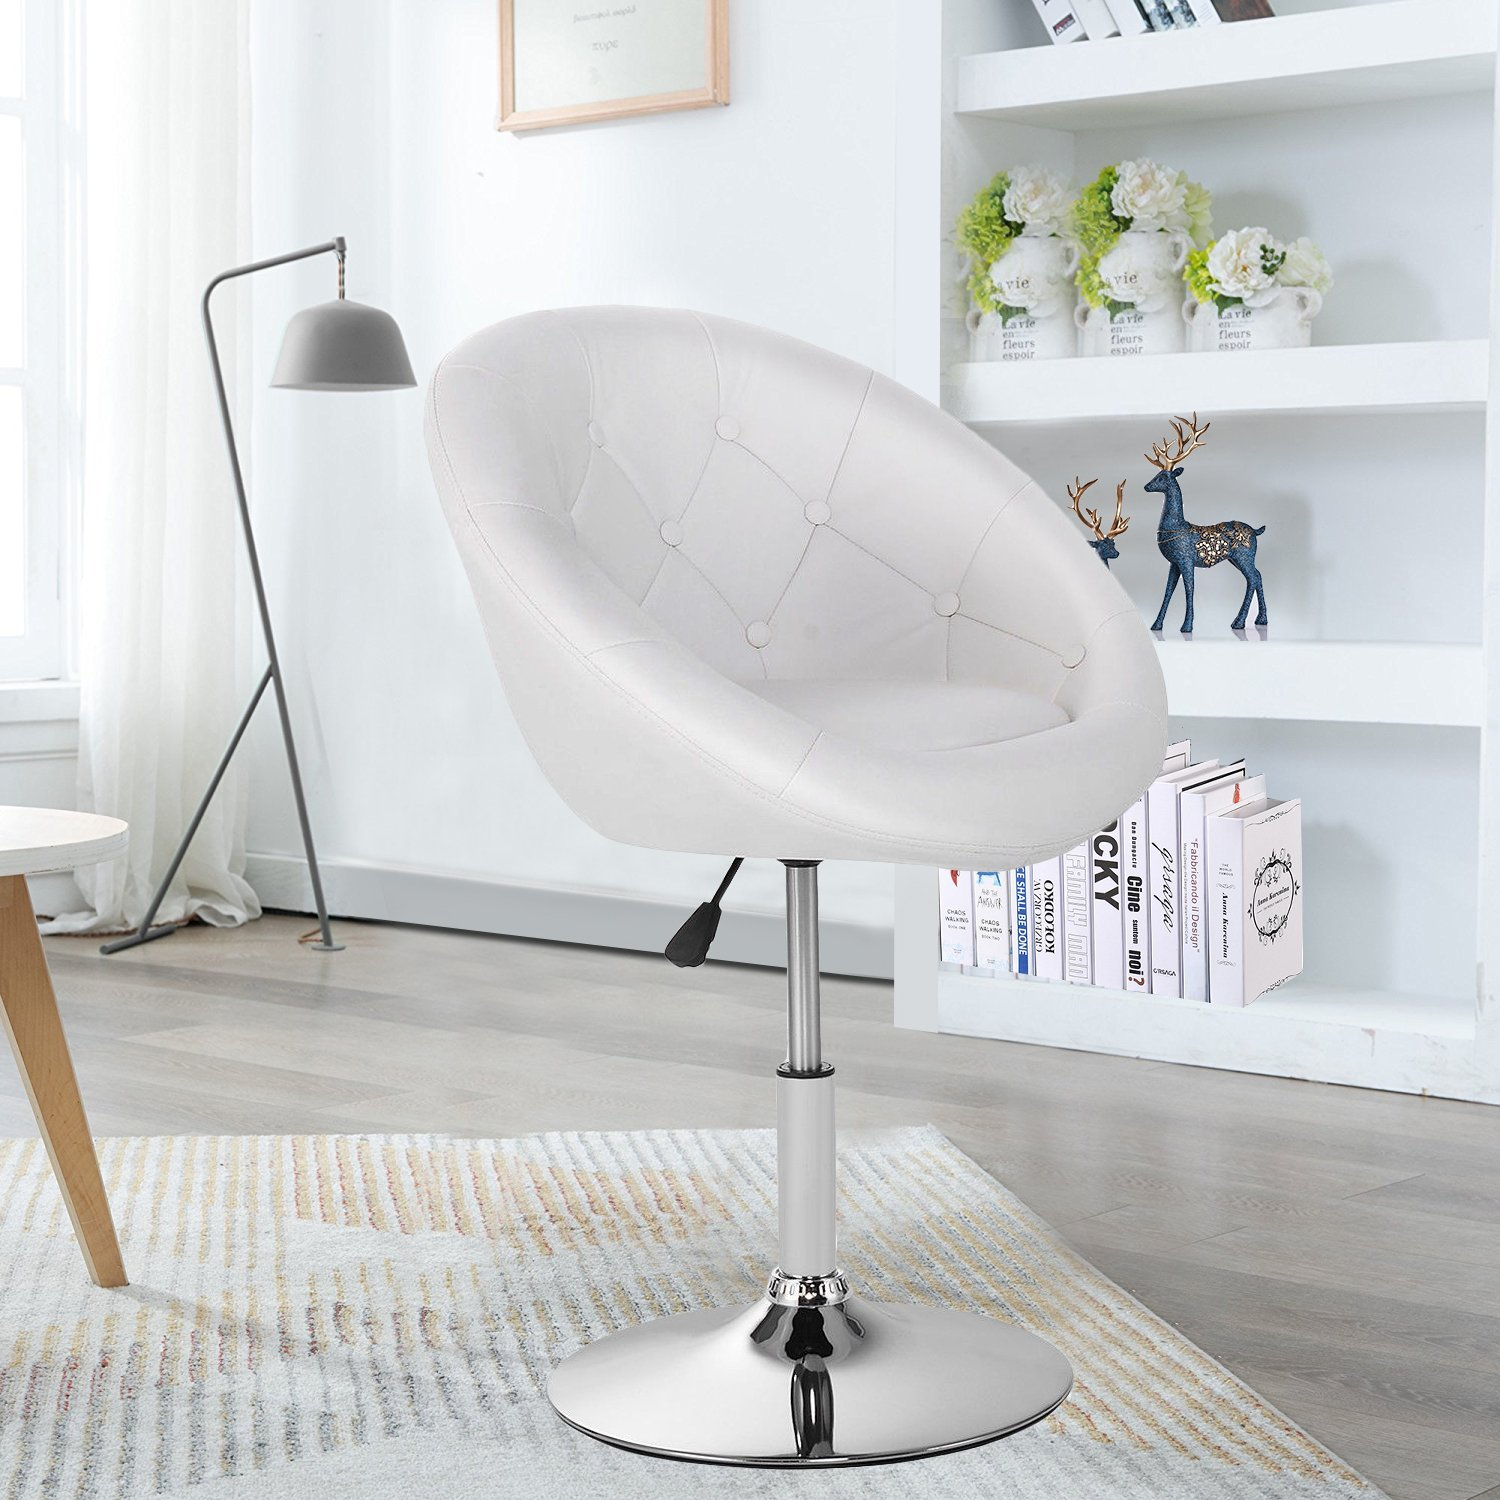 GentleShower Barstool, Round Tufted Back Swivel Chair, Chrome Adjustable Swivel Leather Bar Accent stool Chair with Hydraulic Lift (White)